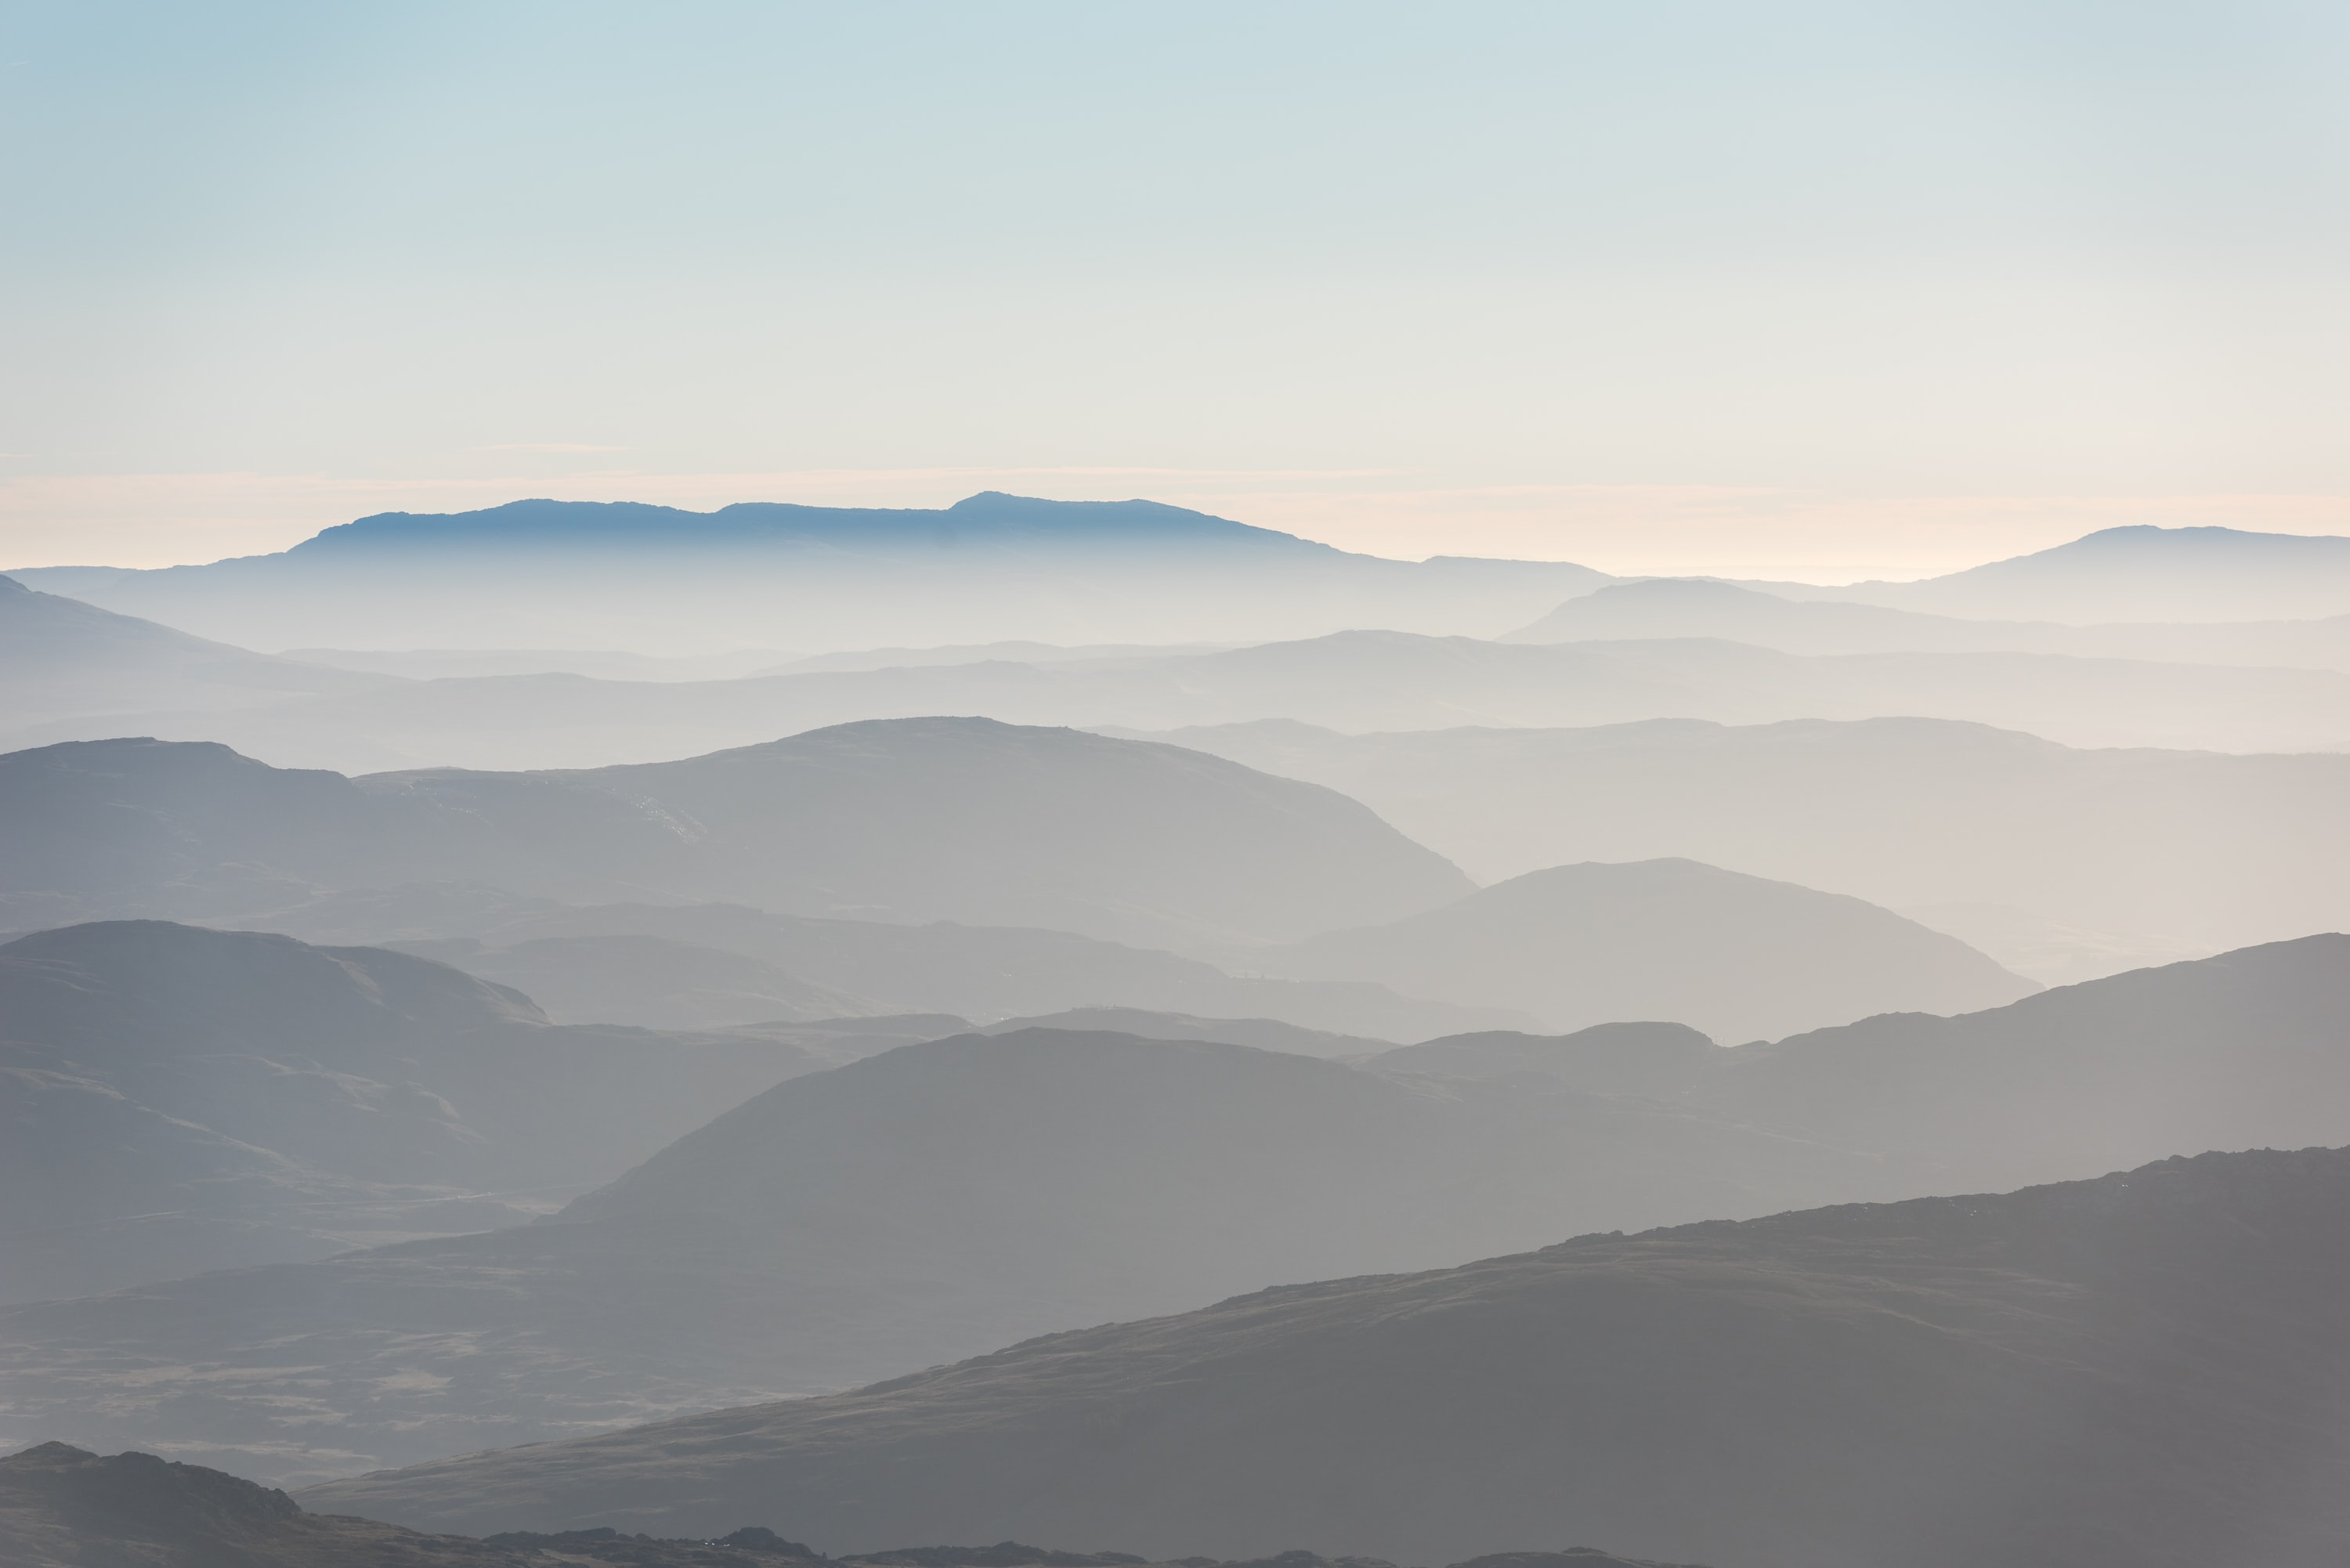 mountains cover by fogs